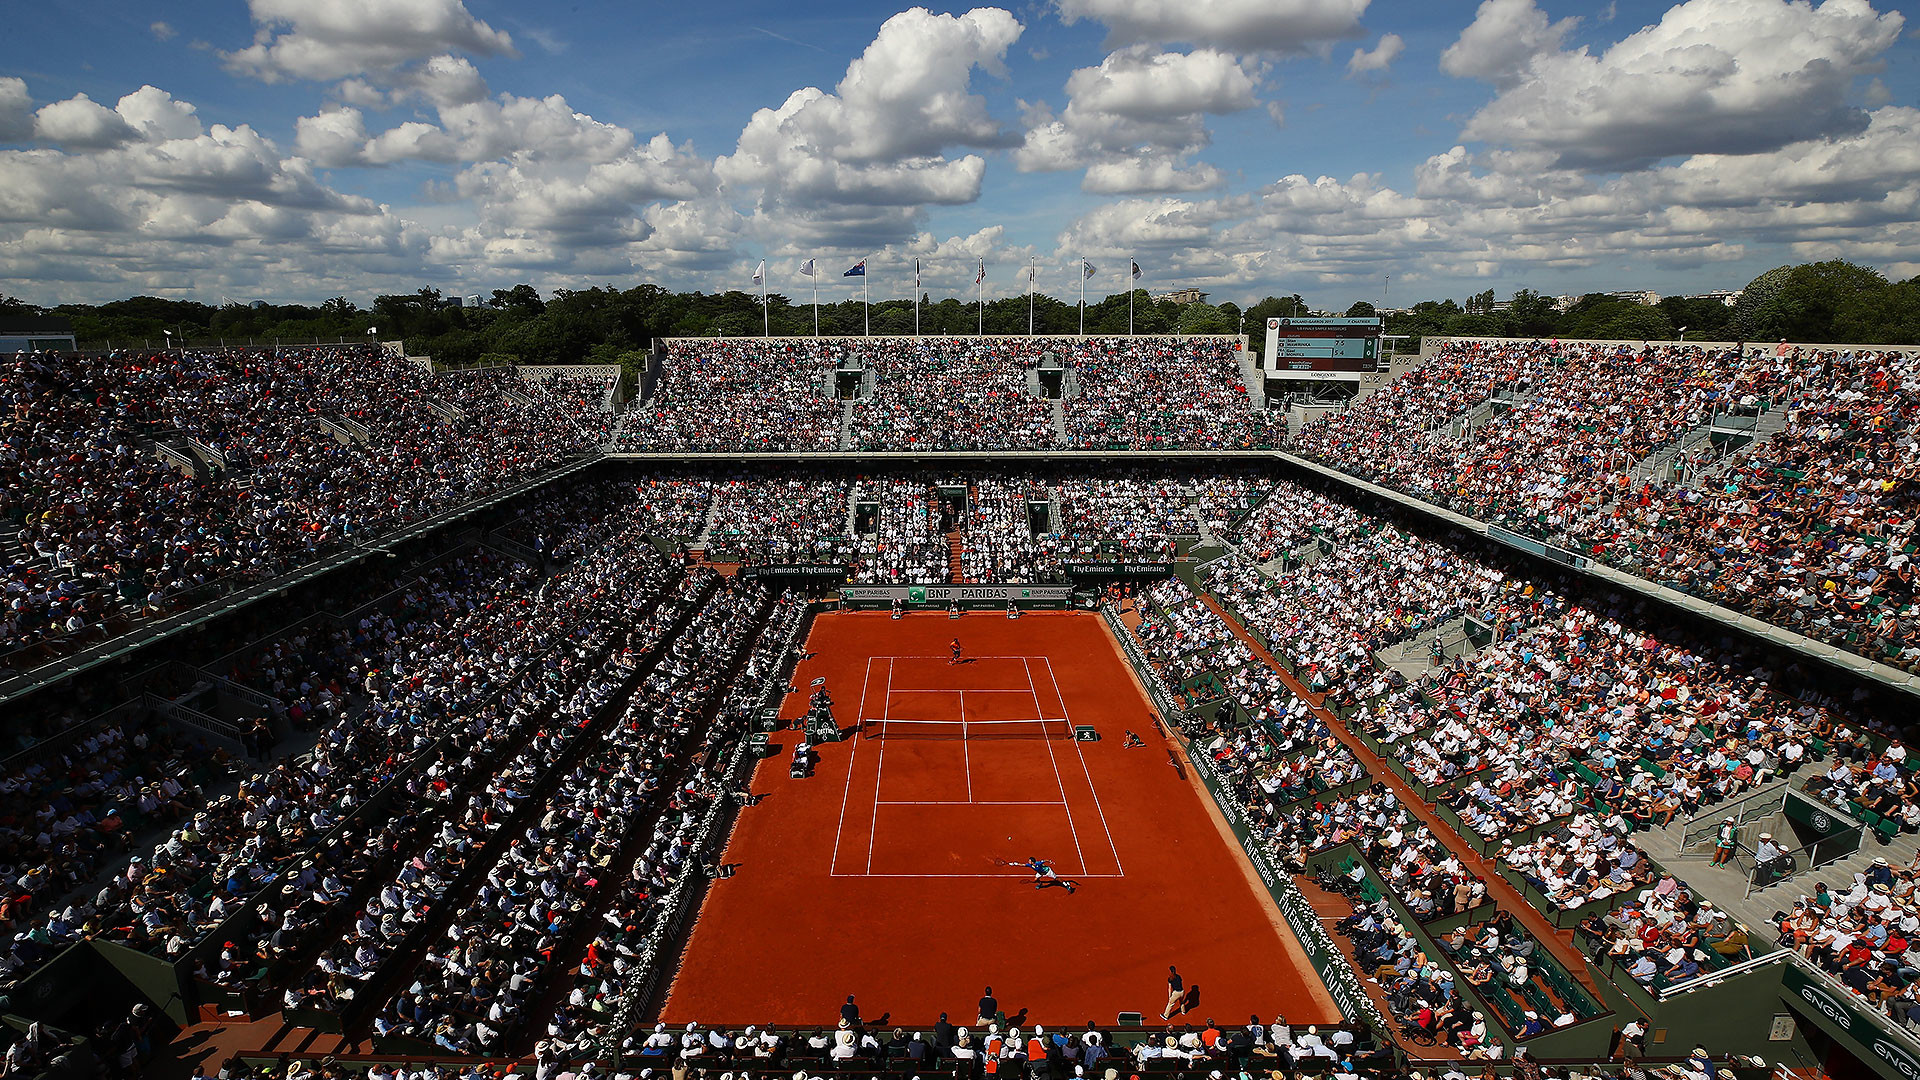 2400x1285 A Wallpaper App Has Already Been Offered On This List However If You Are After More Interactive Tennis Then Live